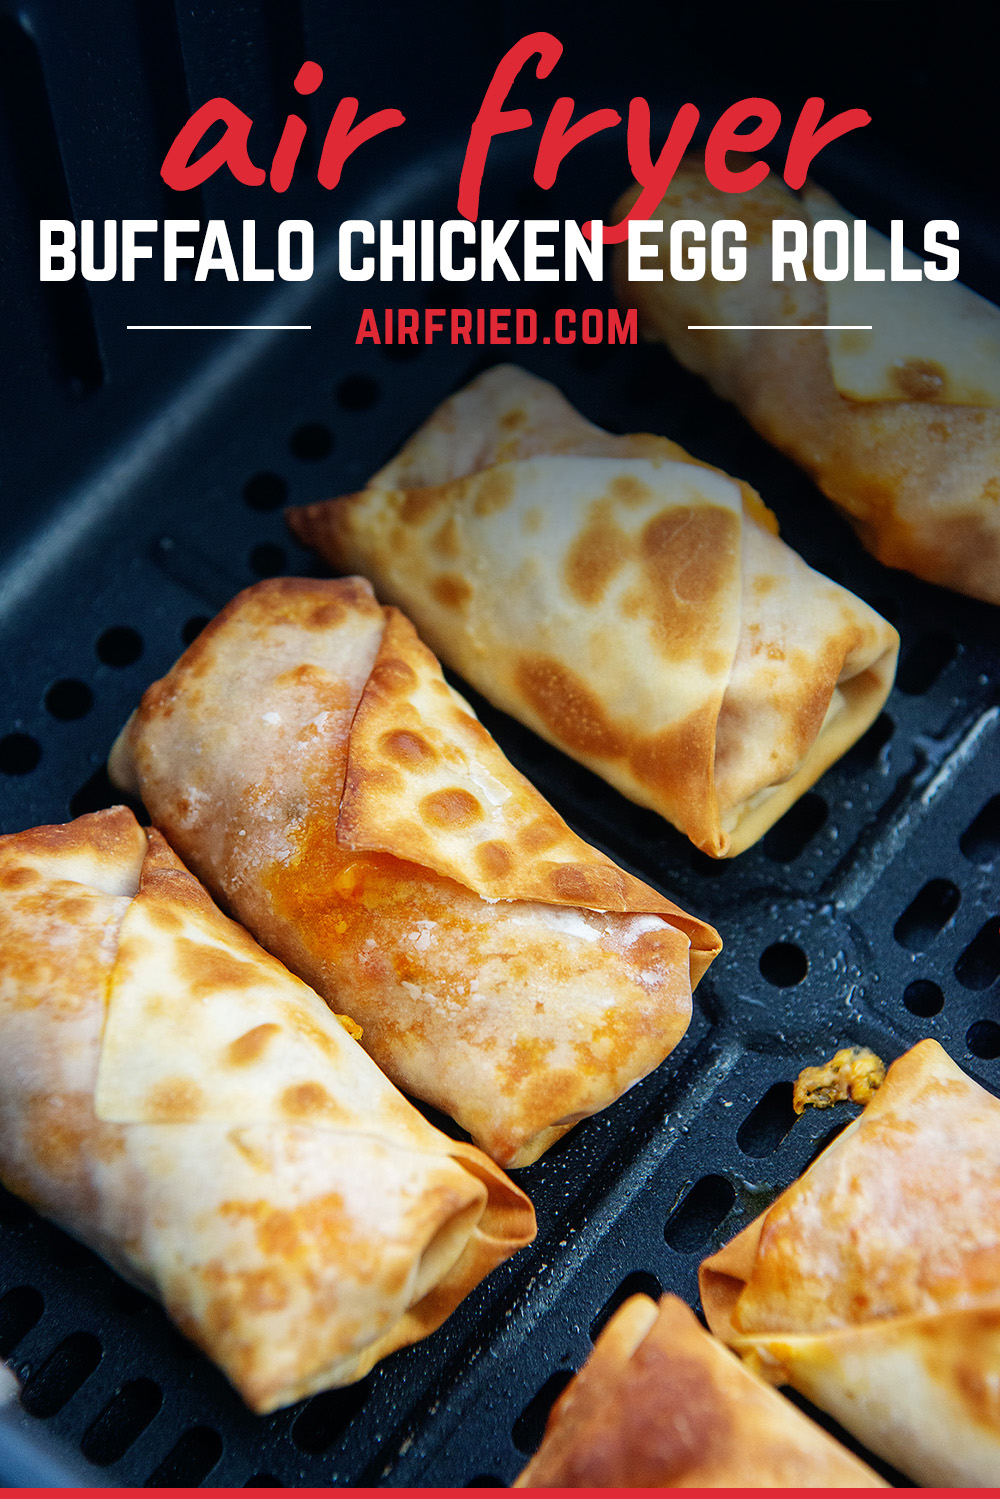 Buffalo chicken egg rolls are made with a mild buffalo chicken filling and air fried to a crispy shell.  These are a great, unique way to enjoy those  buffalo chicken flavors!